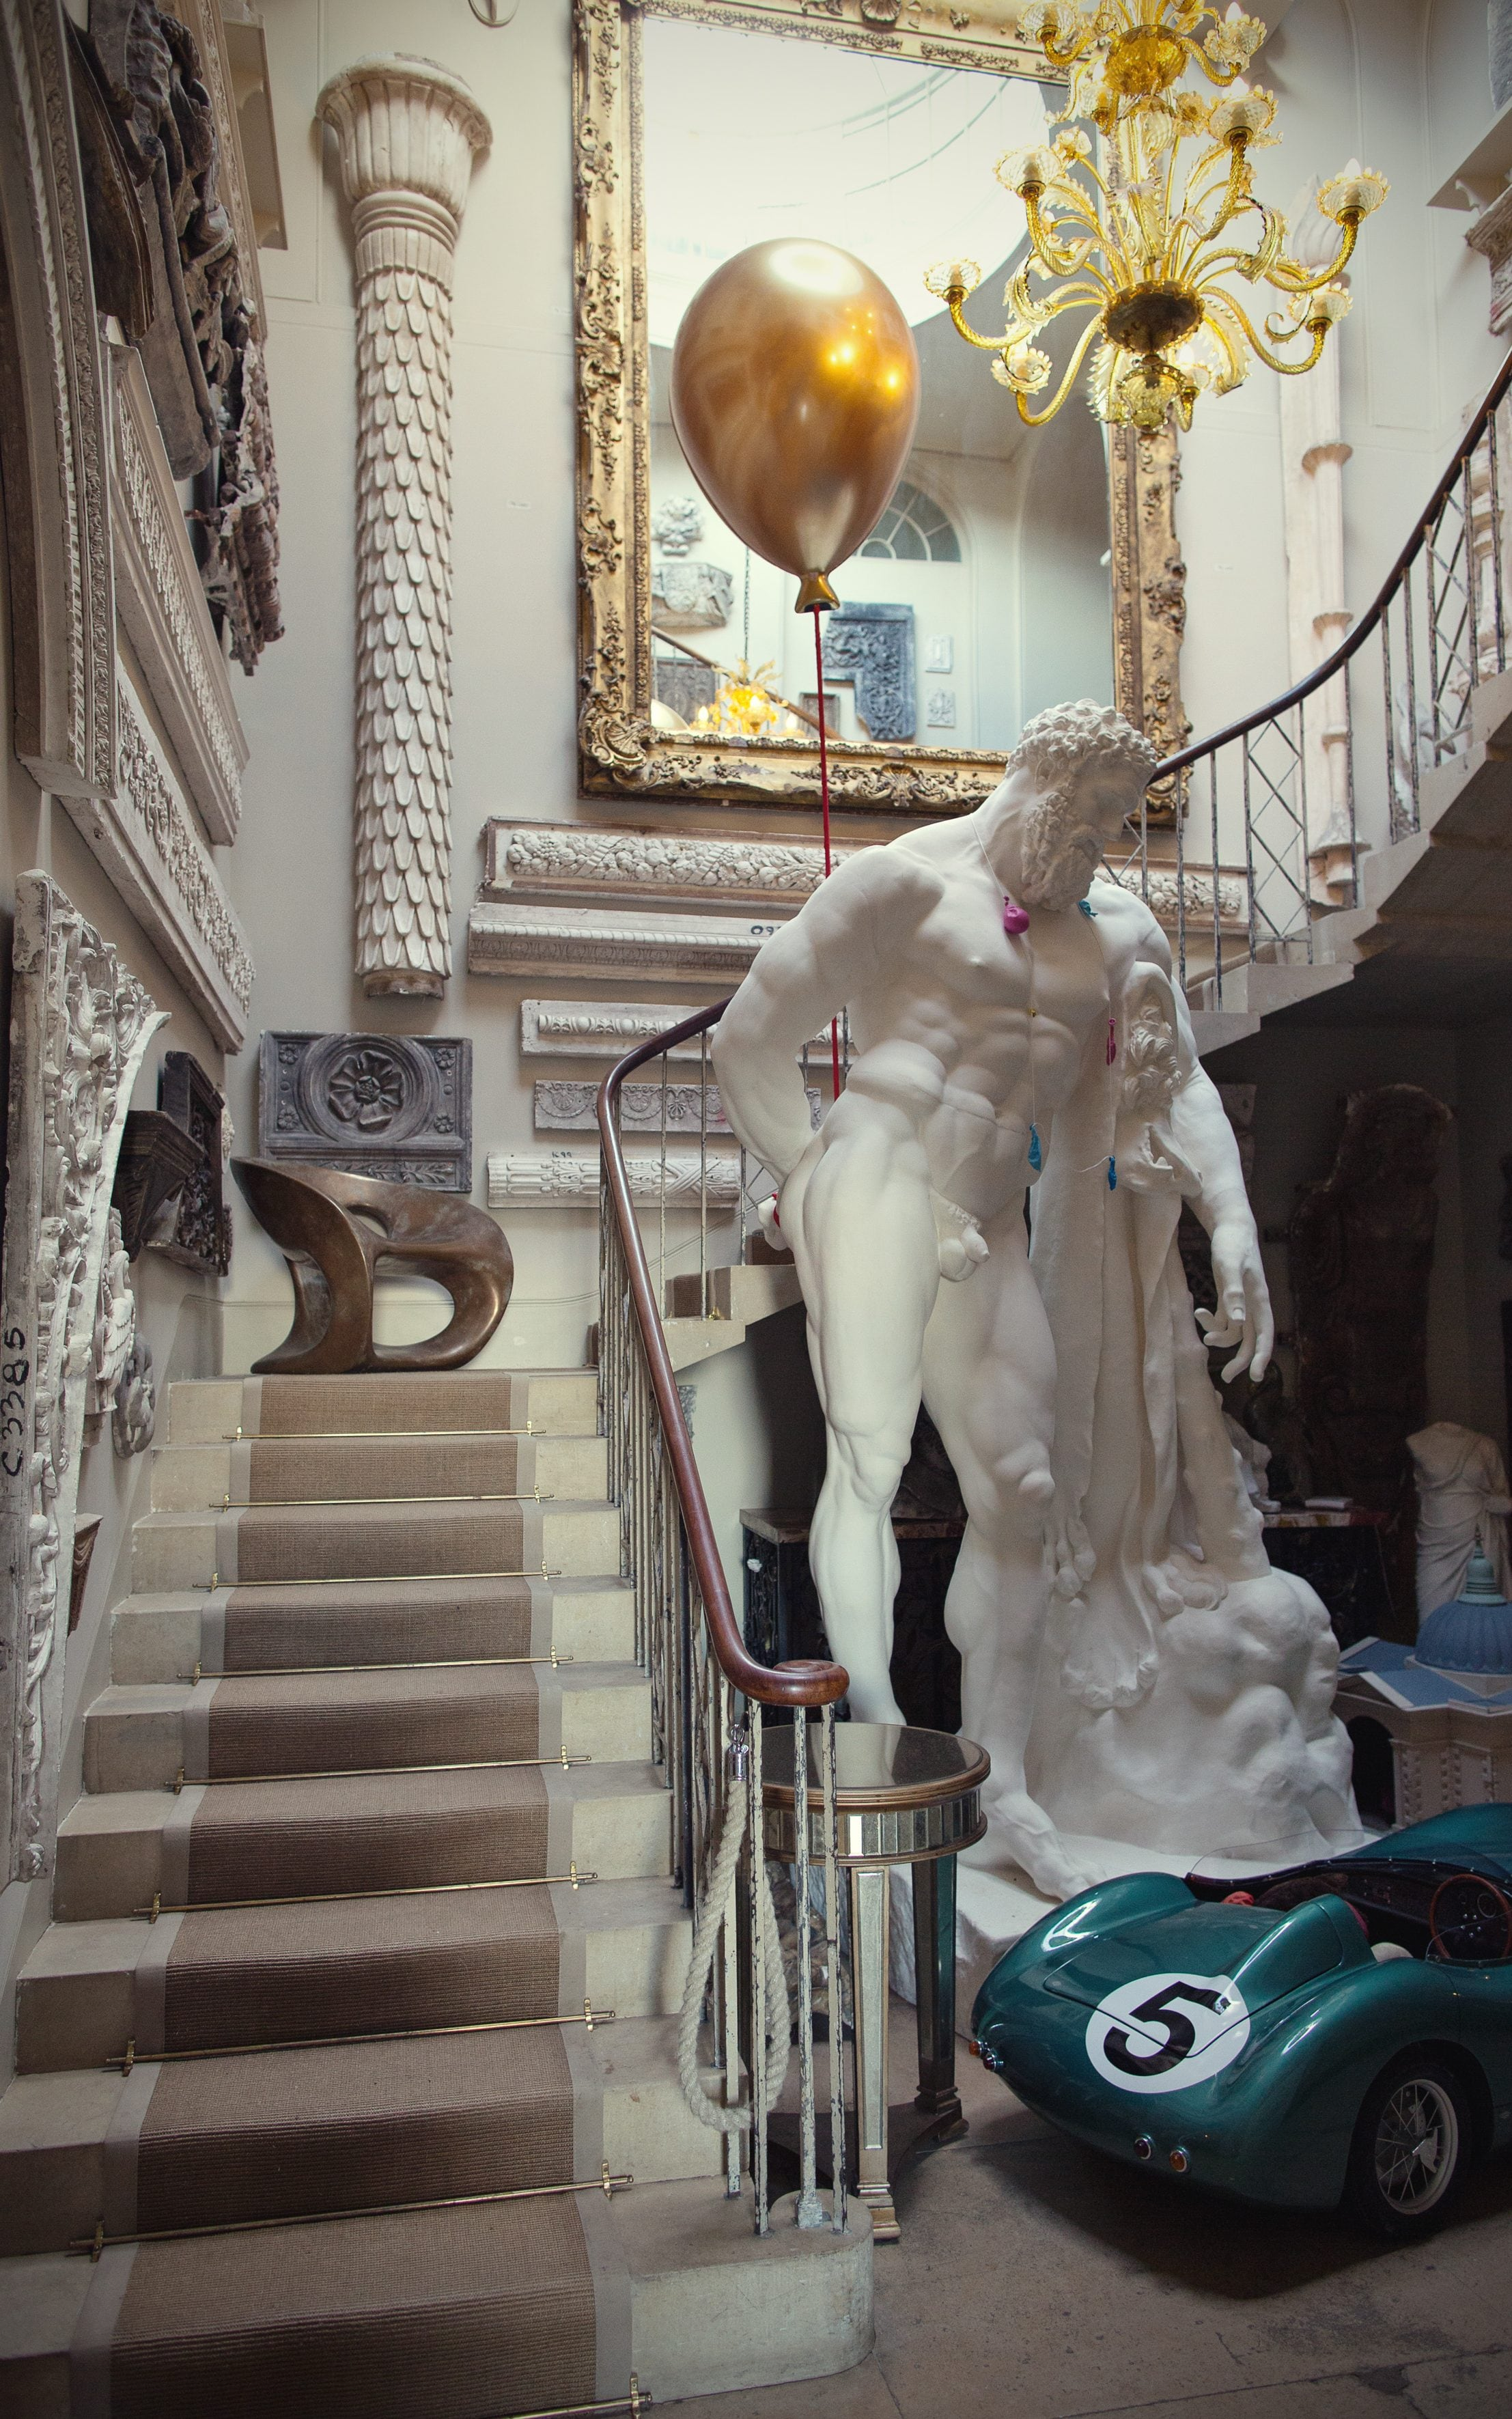 Inside Aynhoe Park The Eccentric Taxidermy Filled Estate That Is Building New Homes In Its Backyard